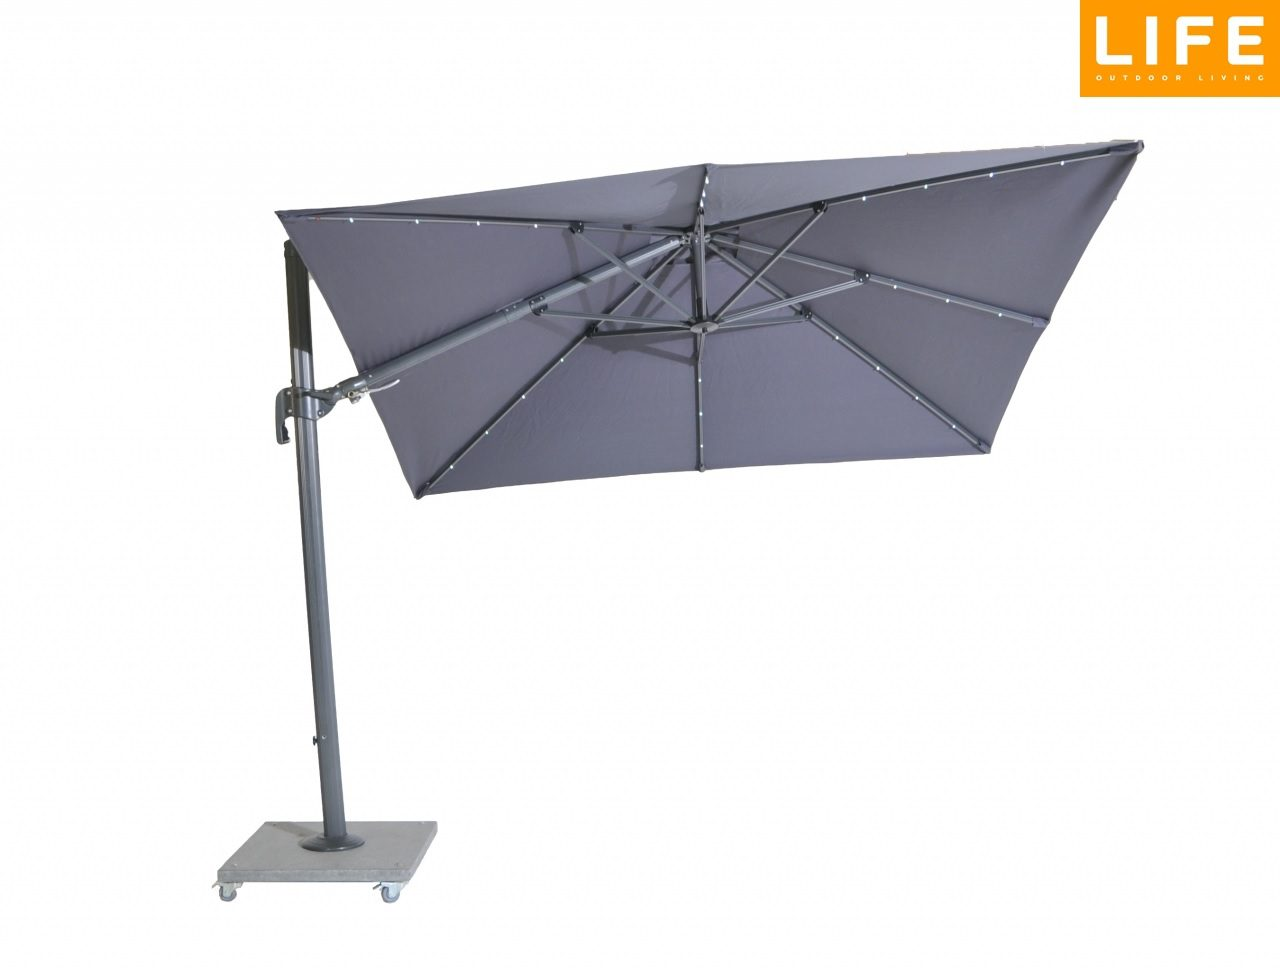 norfolk leisure palermo cantilever parasol 3x3m with leds. Black Bedroom Furniture Sets. Home Design Ideas